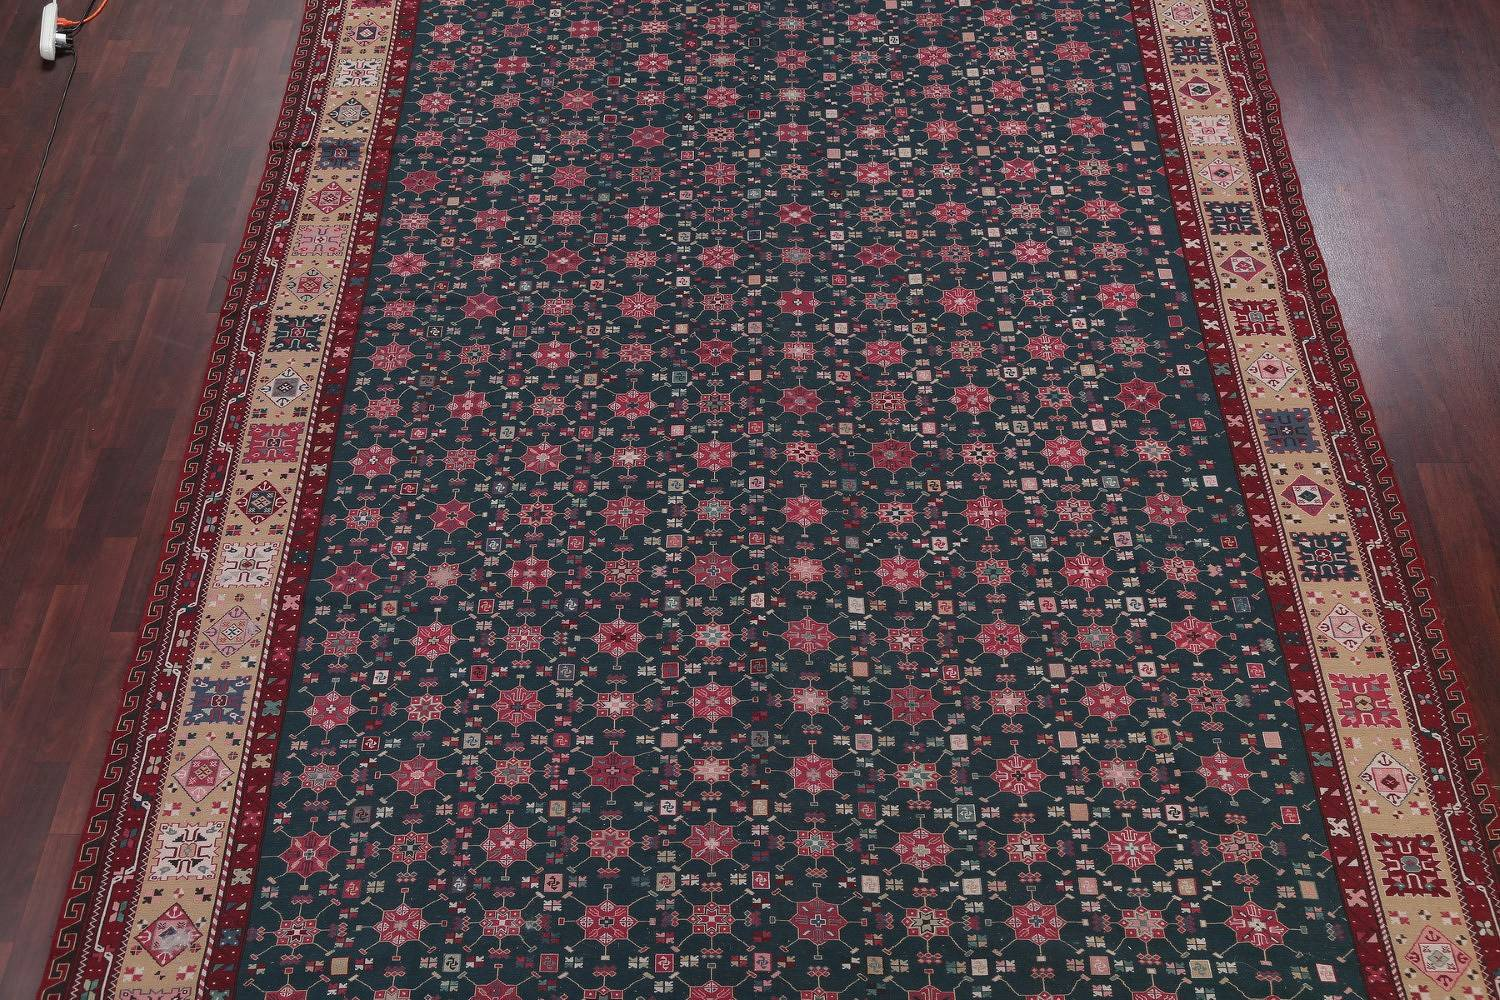 All-Over Teal Green Sumak Turkish Oriental Hand-Woven Area Rug Wool 10x14